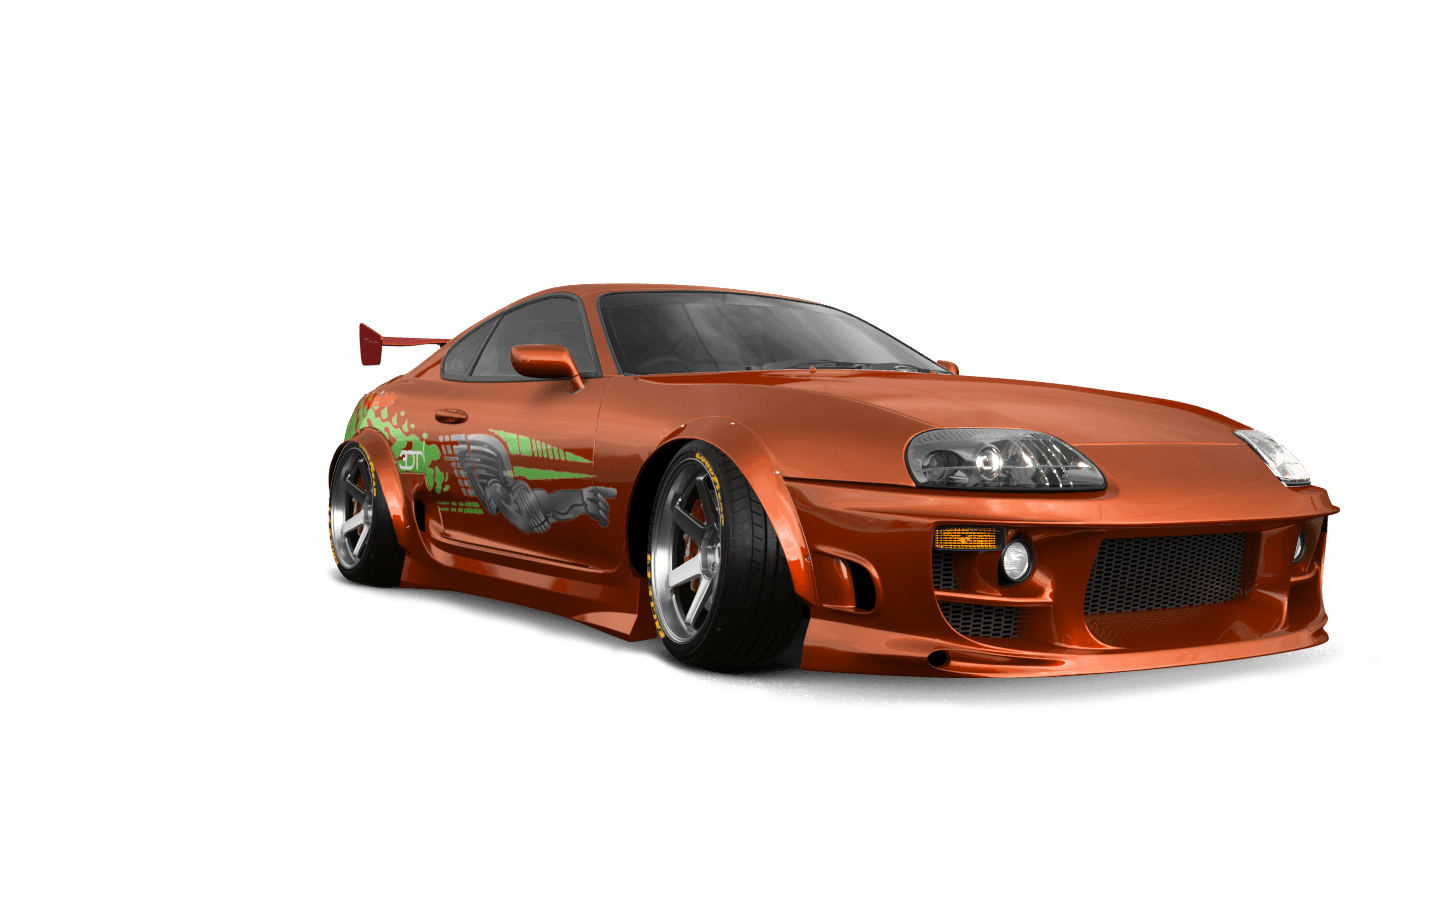 My Perfect Toyota Supra 3dtuning Probably The Best Car Configurator